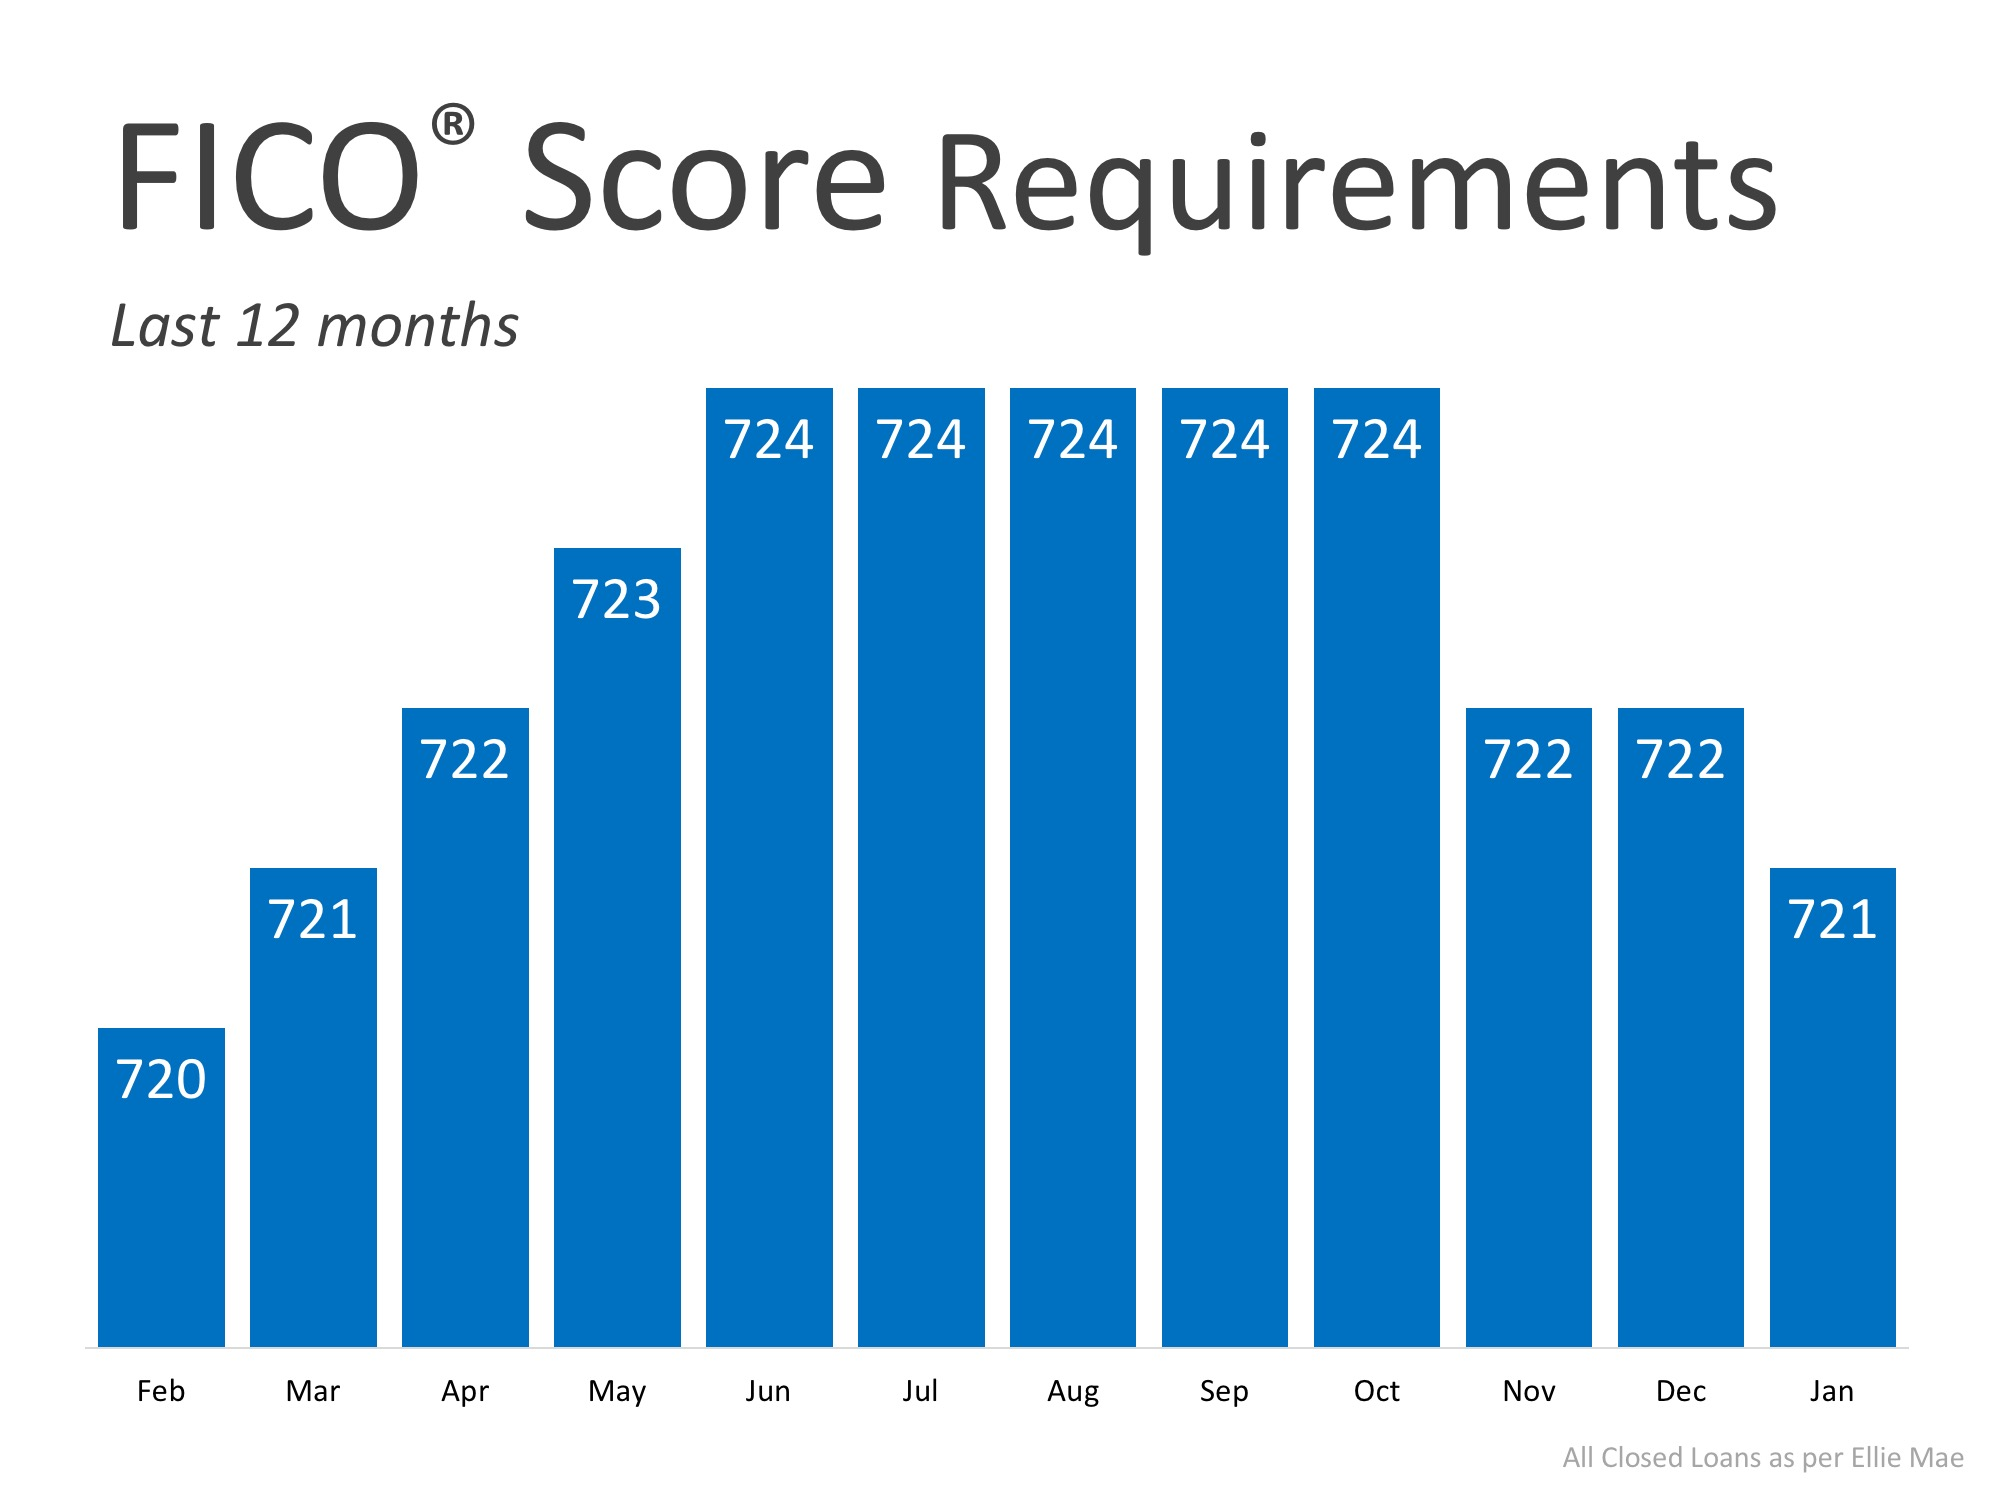 FICO Score Requirements